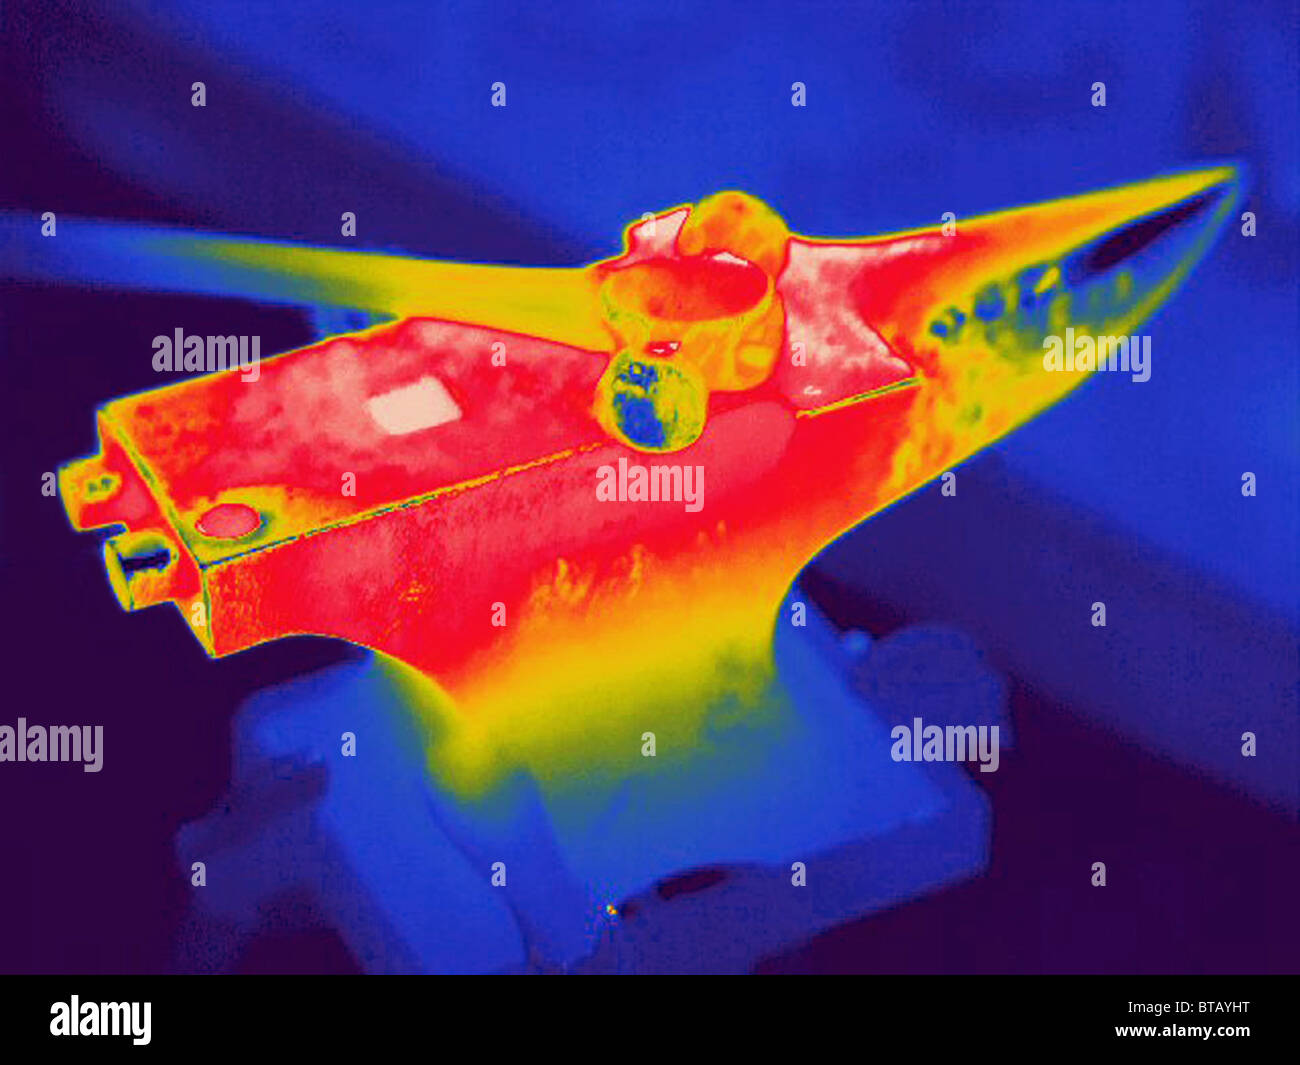 thermal image of a hot hammer and anvil - Stock Image